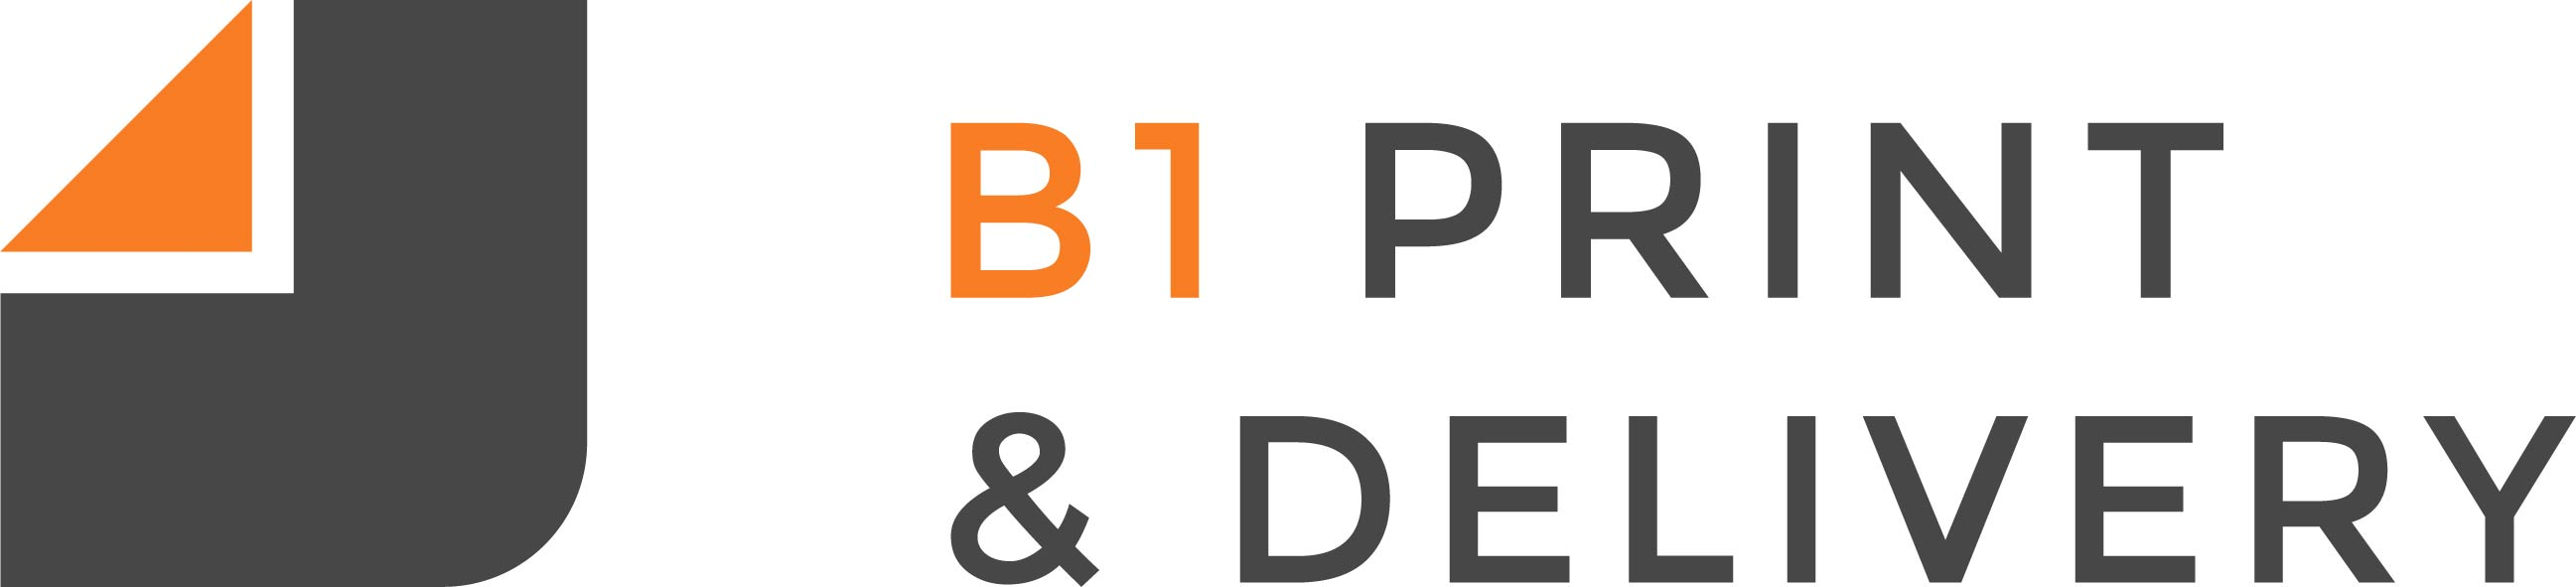 B1 Print & Delivery voor SAP Business One